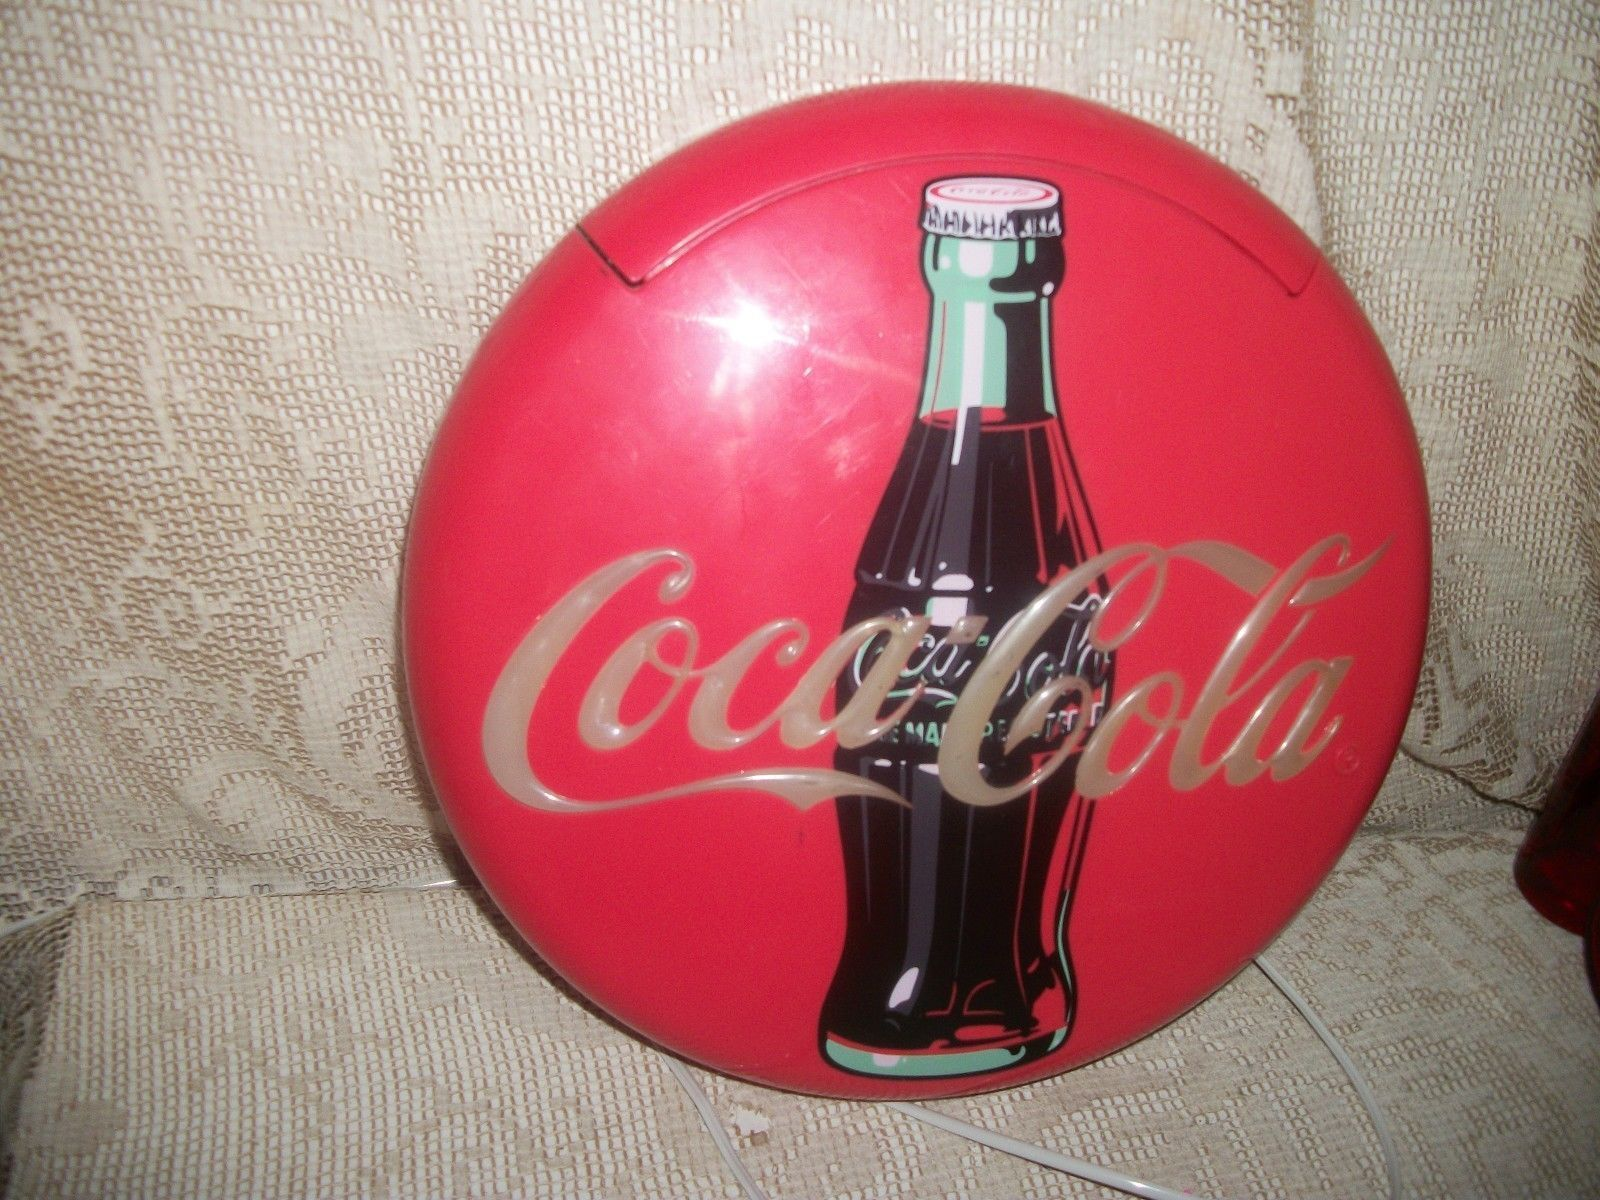 COCA COLA TELEPHONE FLASHES LIGHTS WHEN RINGING 1995 WORKS GREAT! PHONE  CORD INCLUDED! THE COCA COLA LOGO FLASHES (LIGHTS UP) WHEN PHONE RINGS, CAN  BE HUNG ...